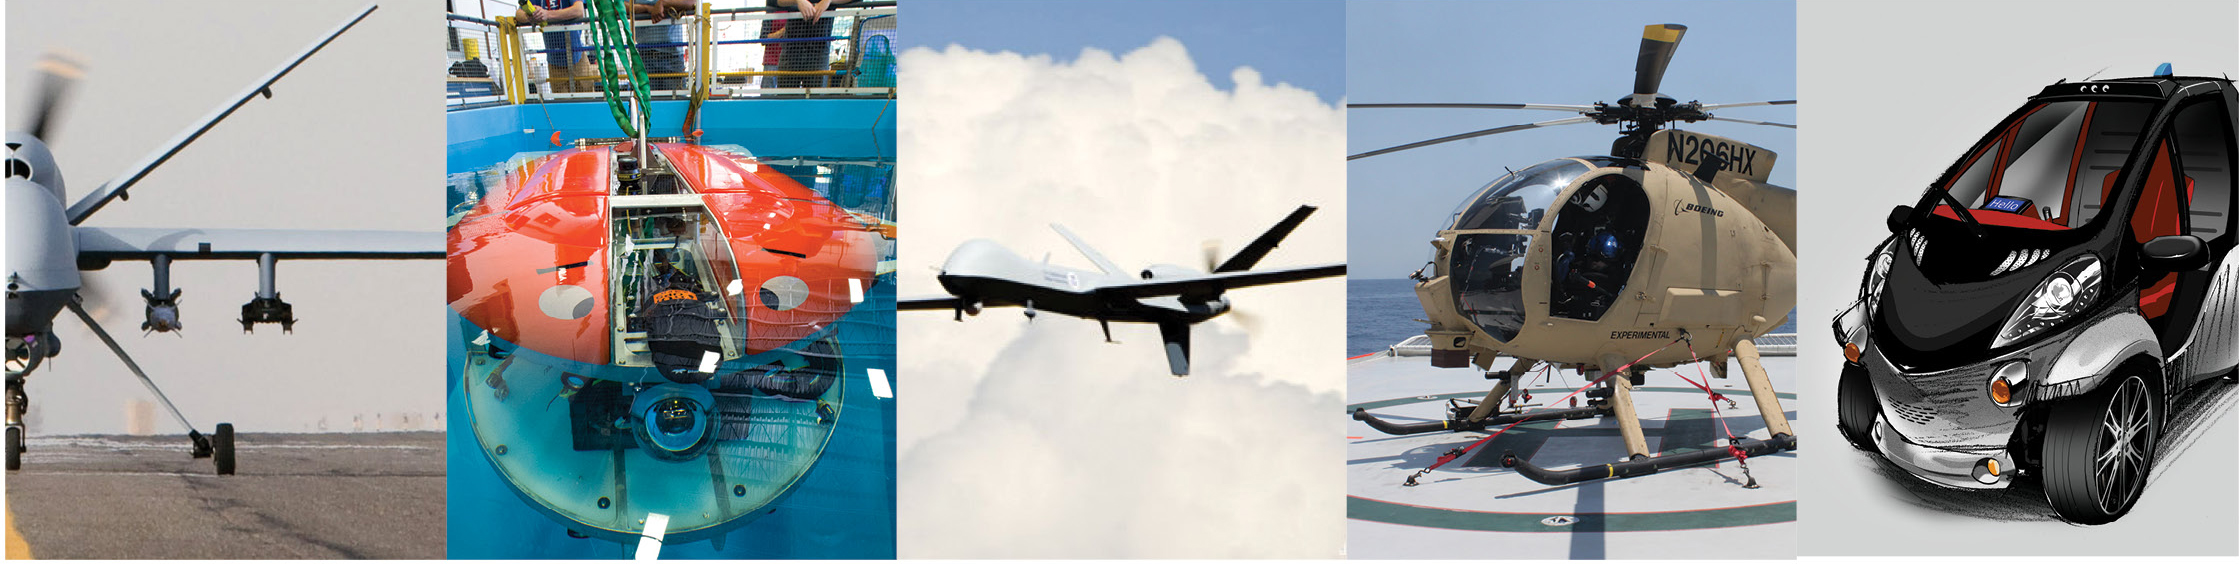 Inside Unmanned Systems Drone AUV